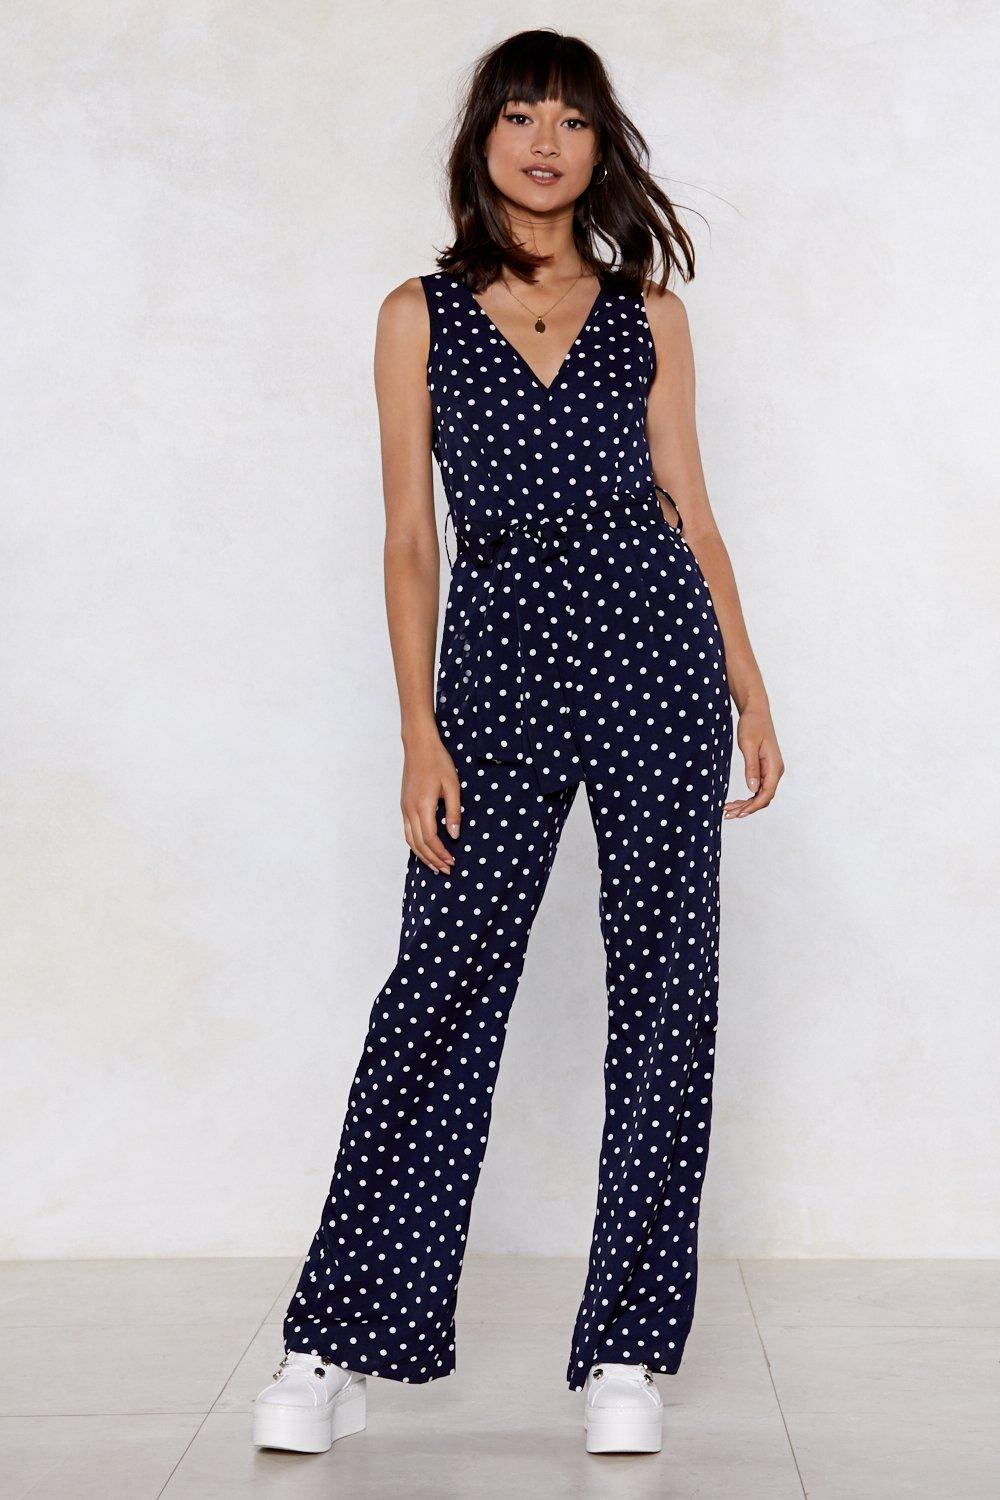 The incorrect polka dot jumpsuit excellent